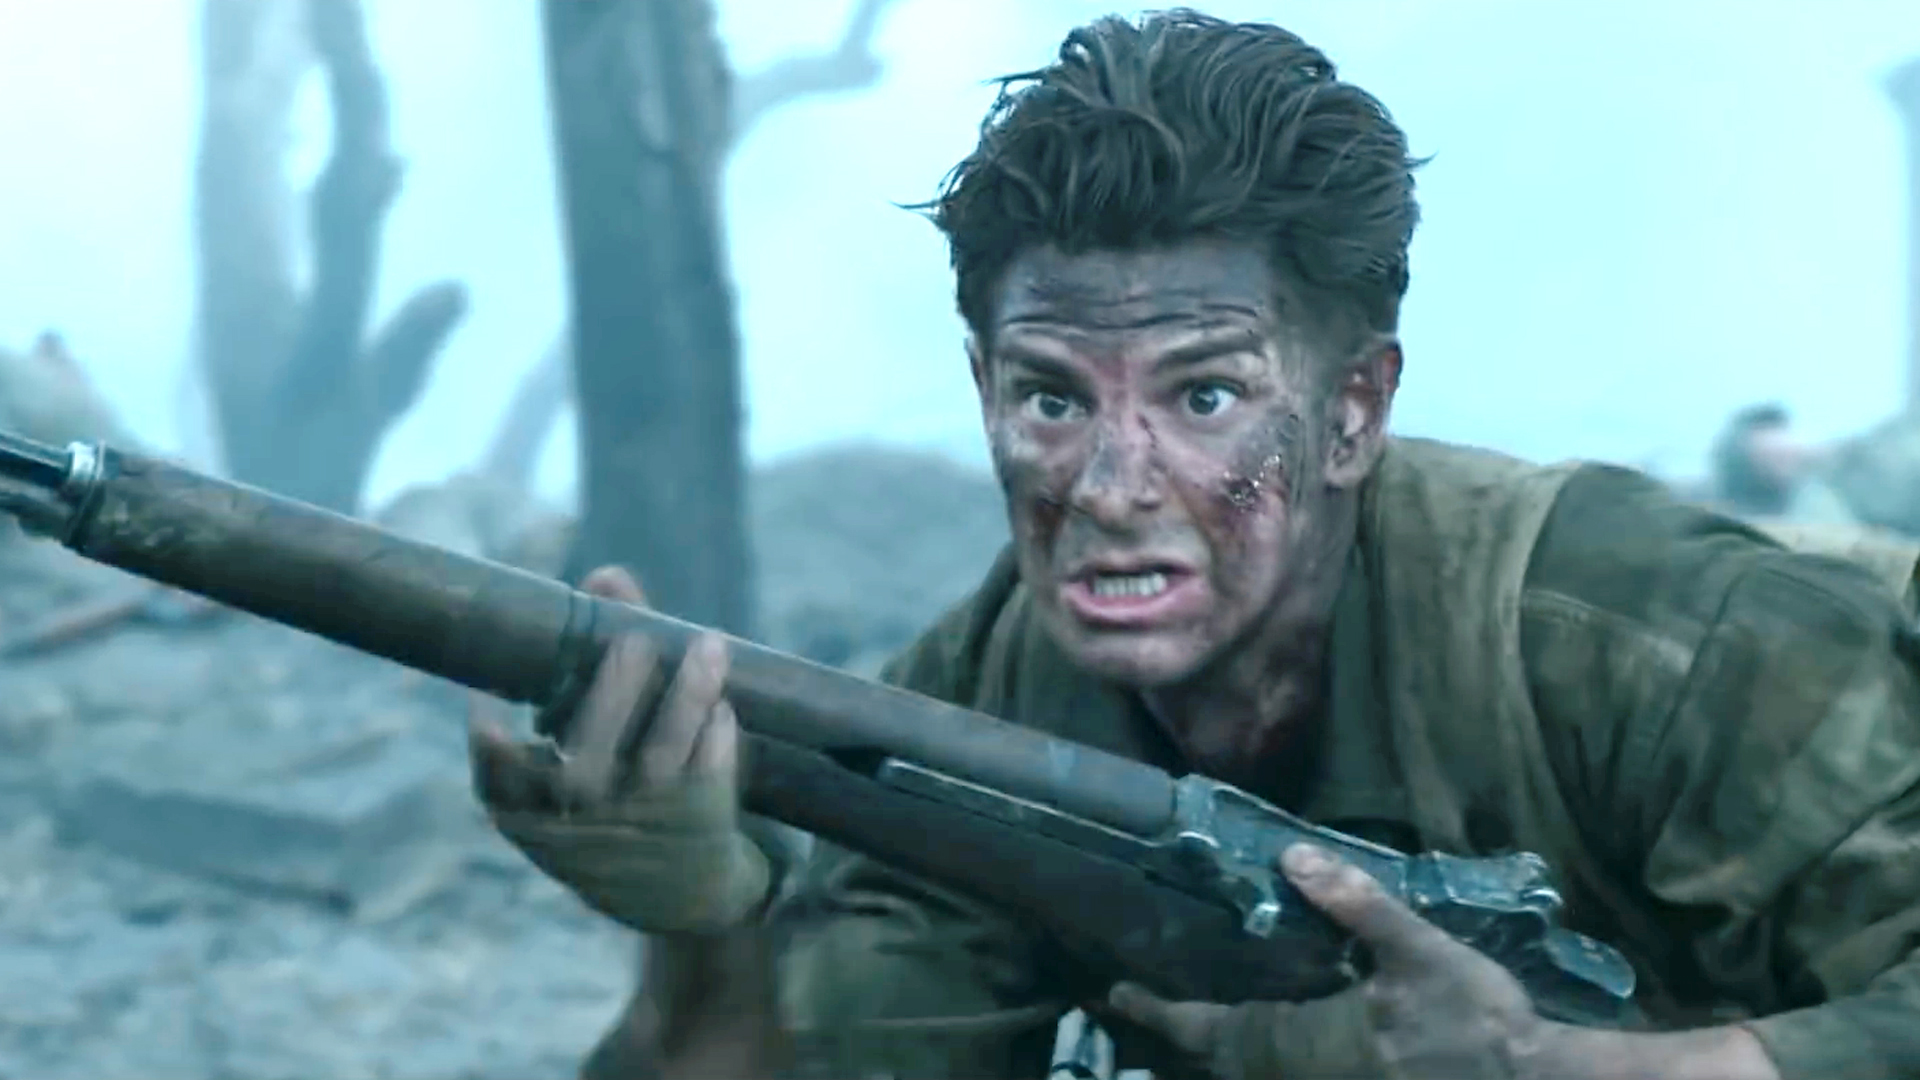 doss men The true story of army medic and conscientious objector desmond doss who, during wwii, saved 75 men without firing or carrying a gun.